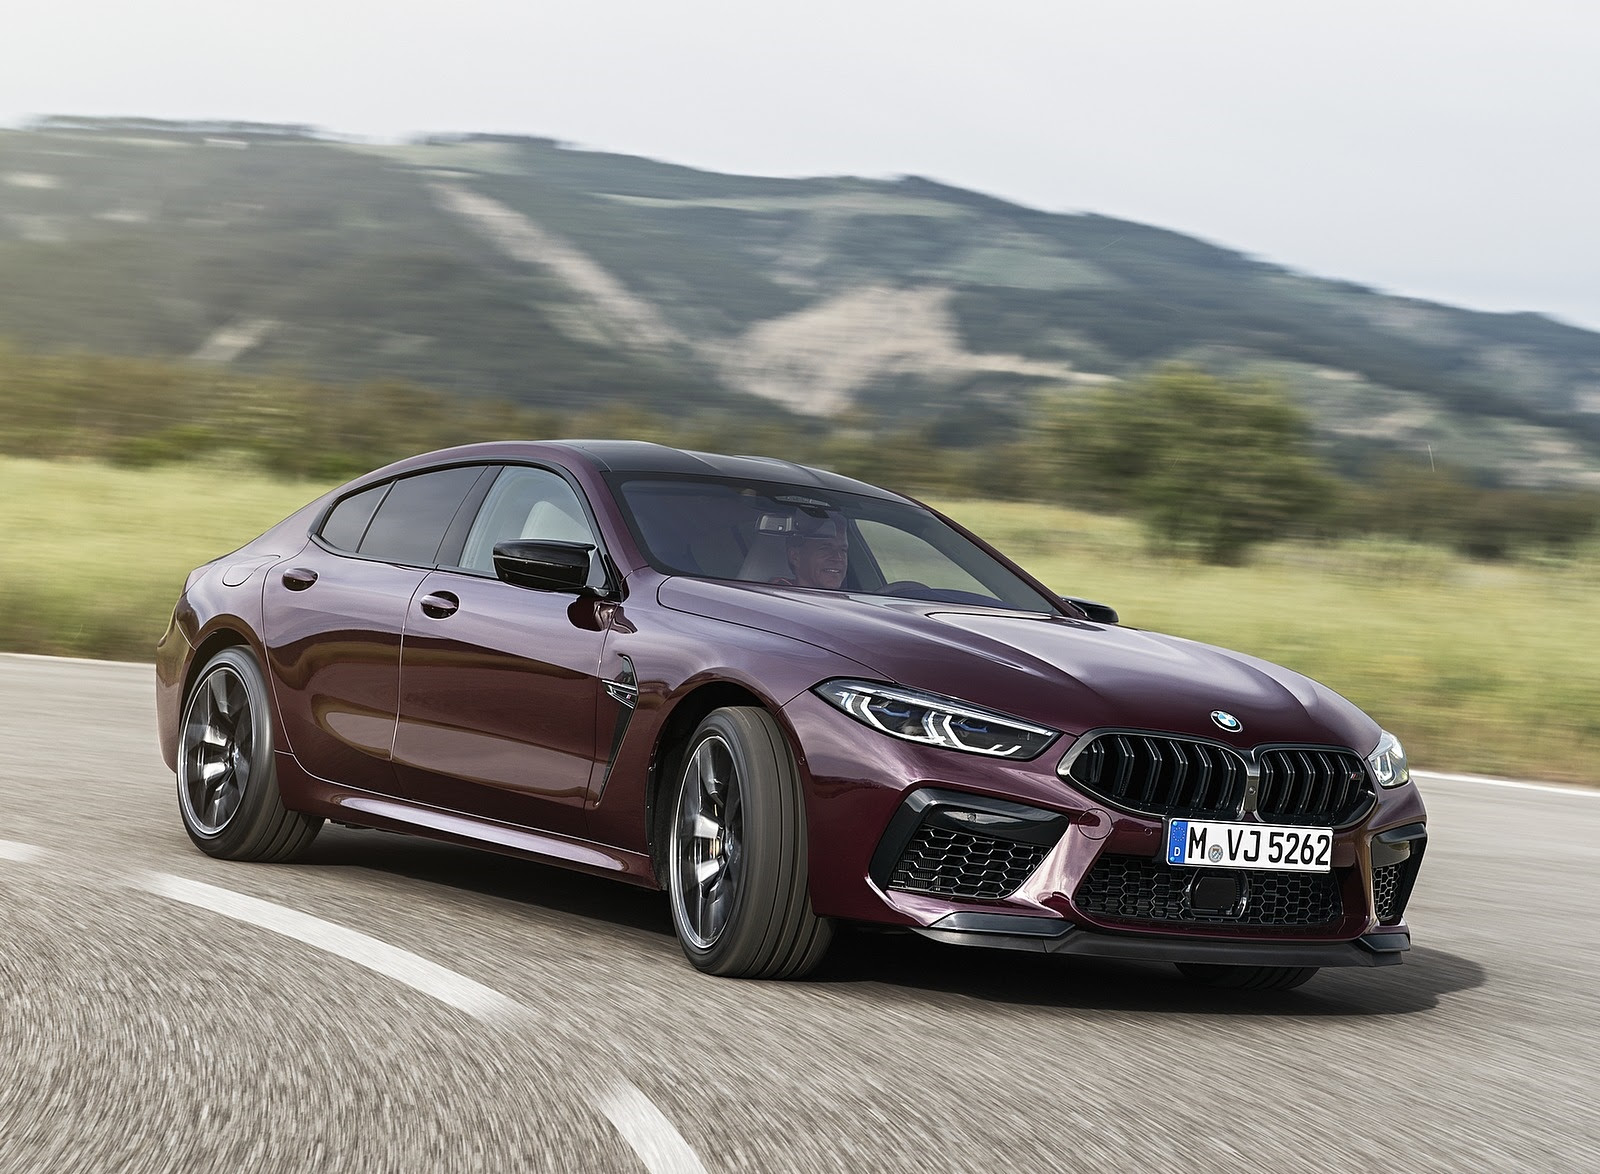 2020 Bmw M8 Gran Coupe Wallpapers 129 Hd Images Newcarcars